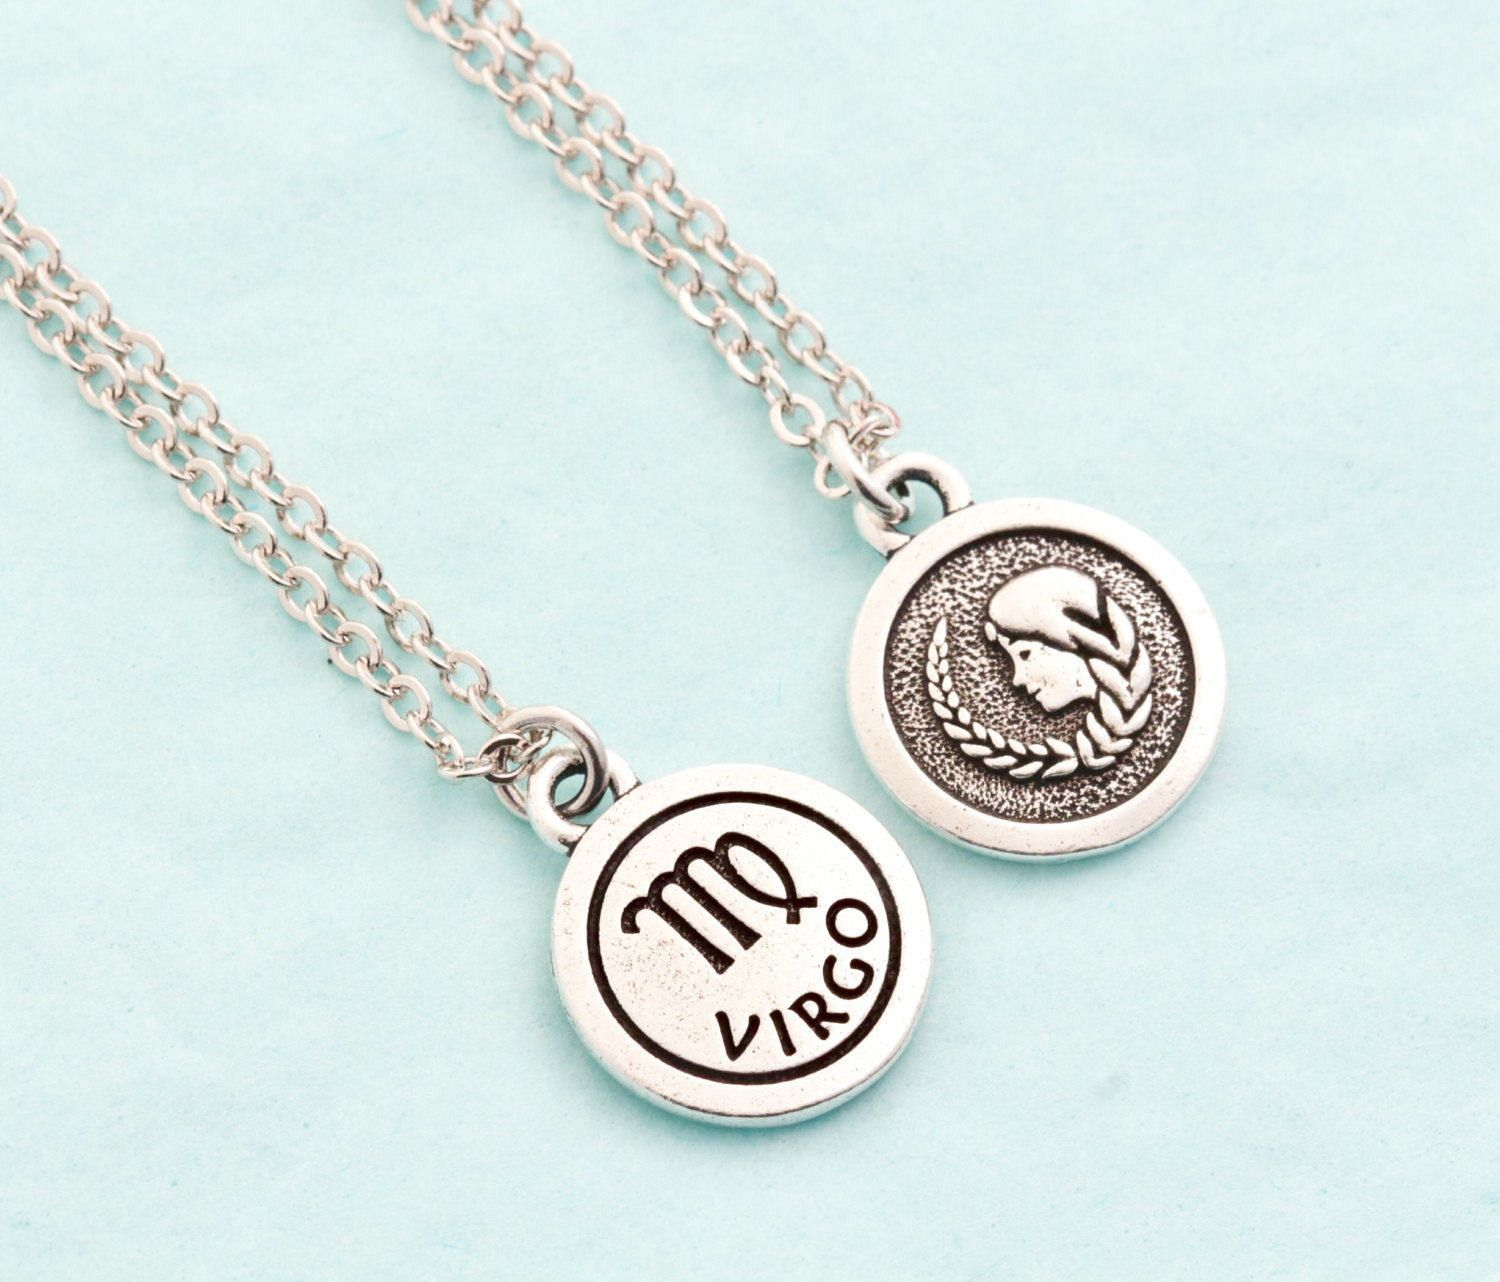 virgo shineon products necklace